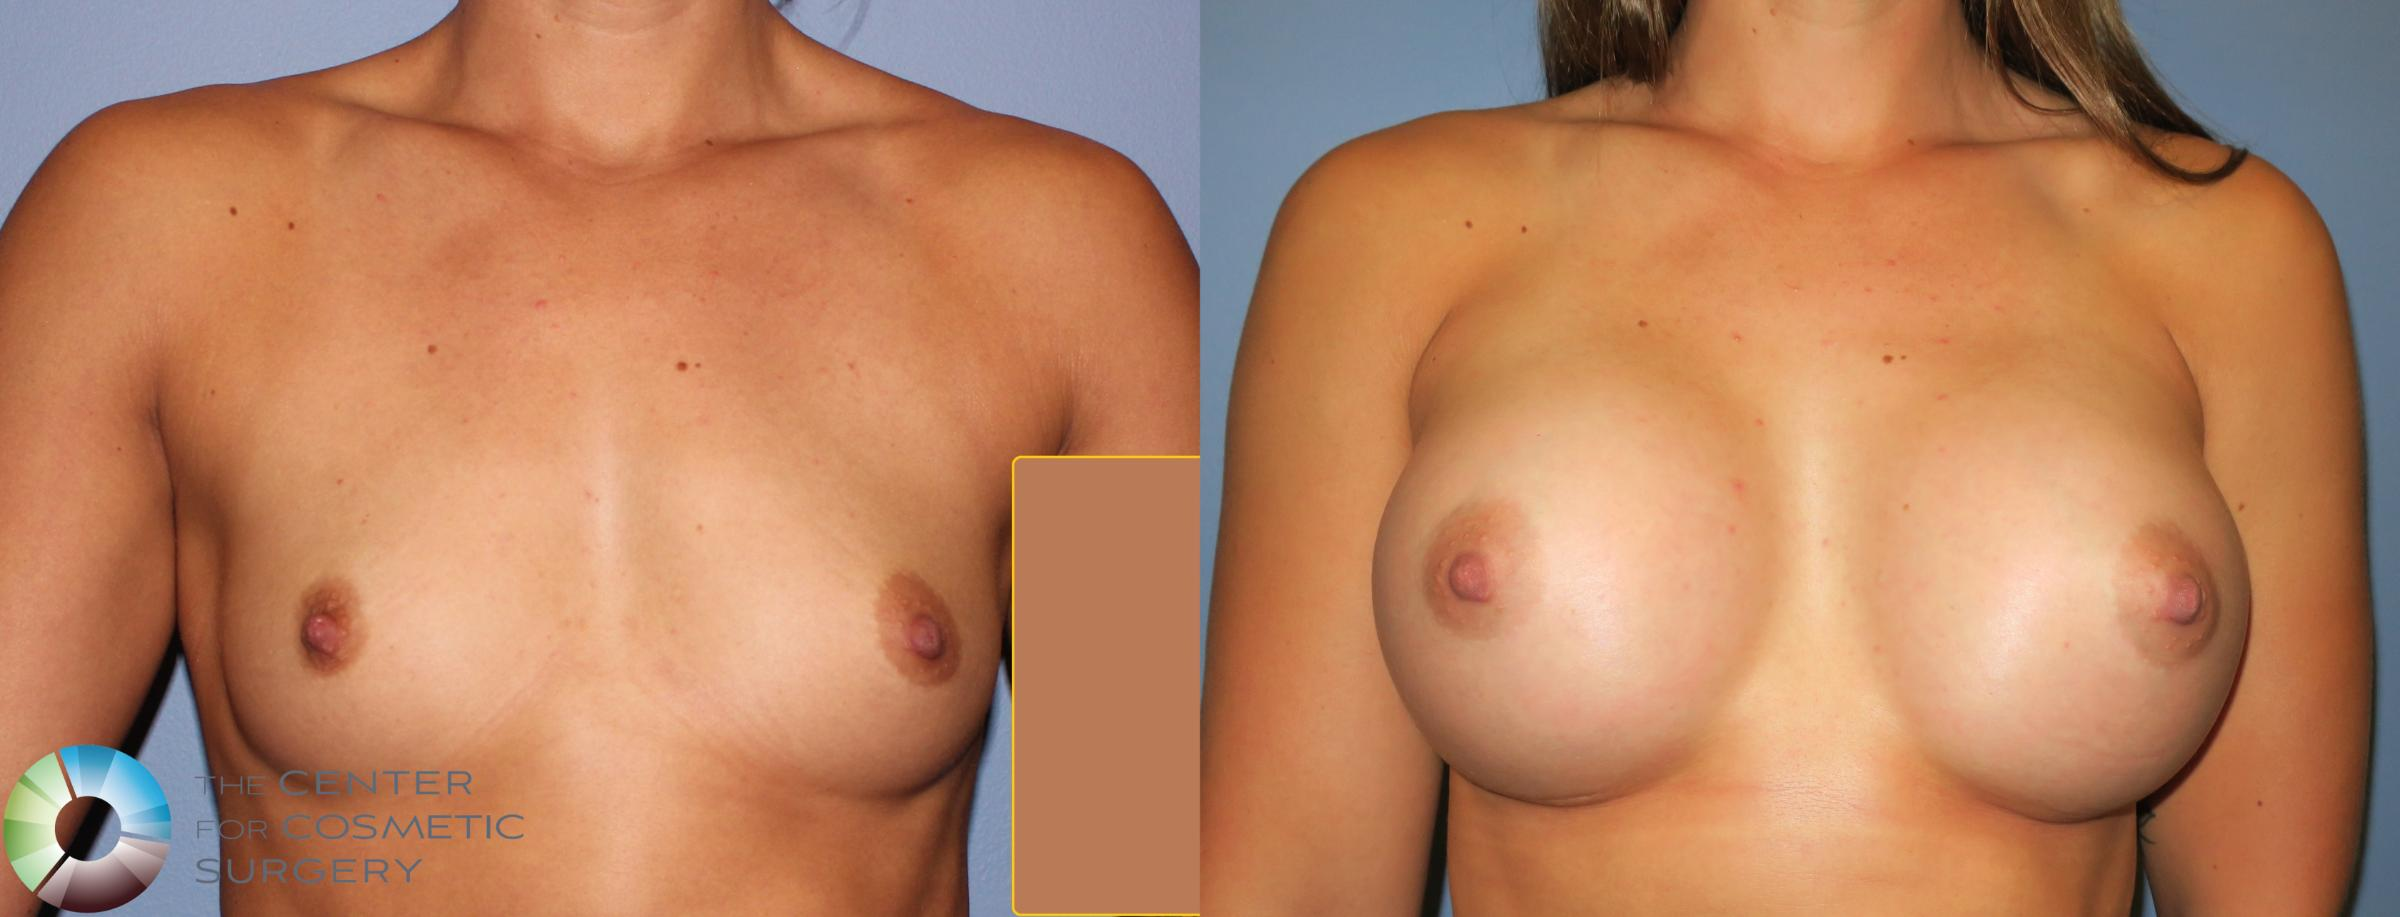 Breast Augmentation Case 811 Before & After View #1 | Denver & Golden, CO | The Center for Cosmetic Surgery